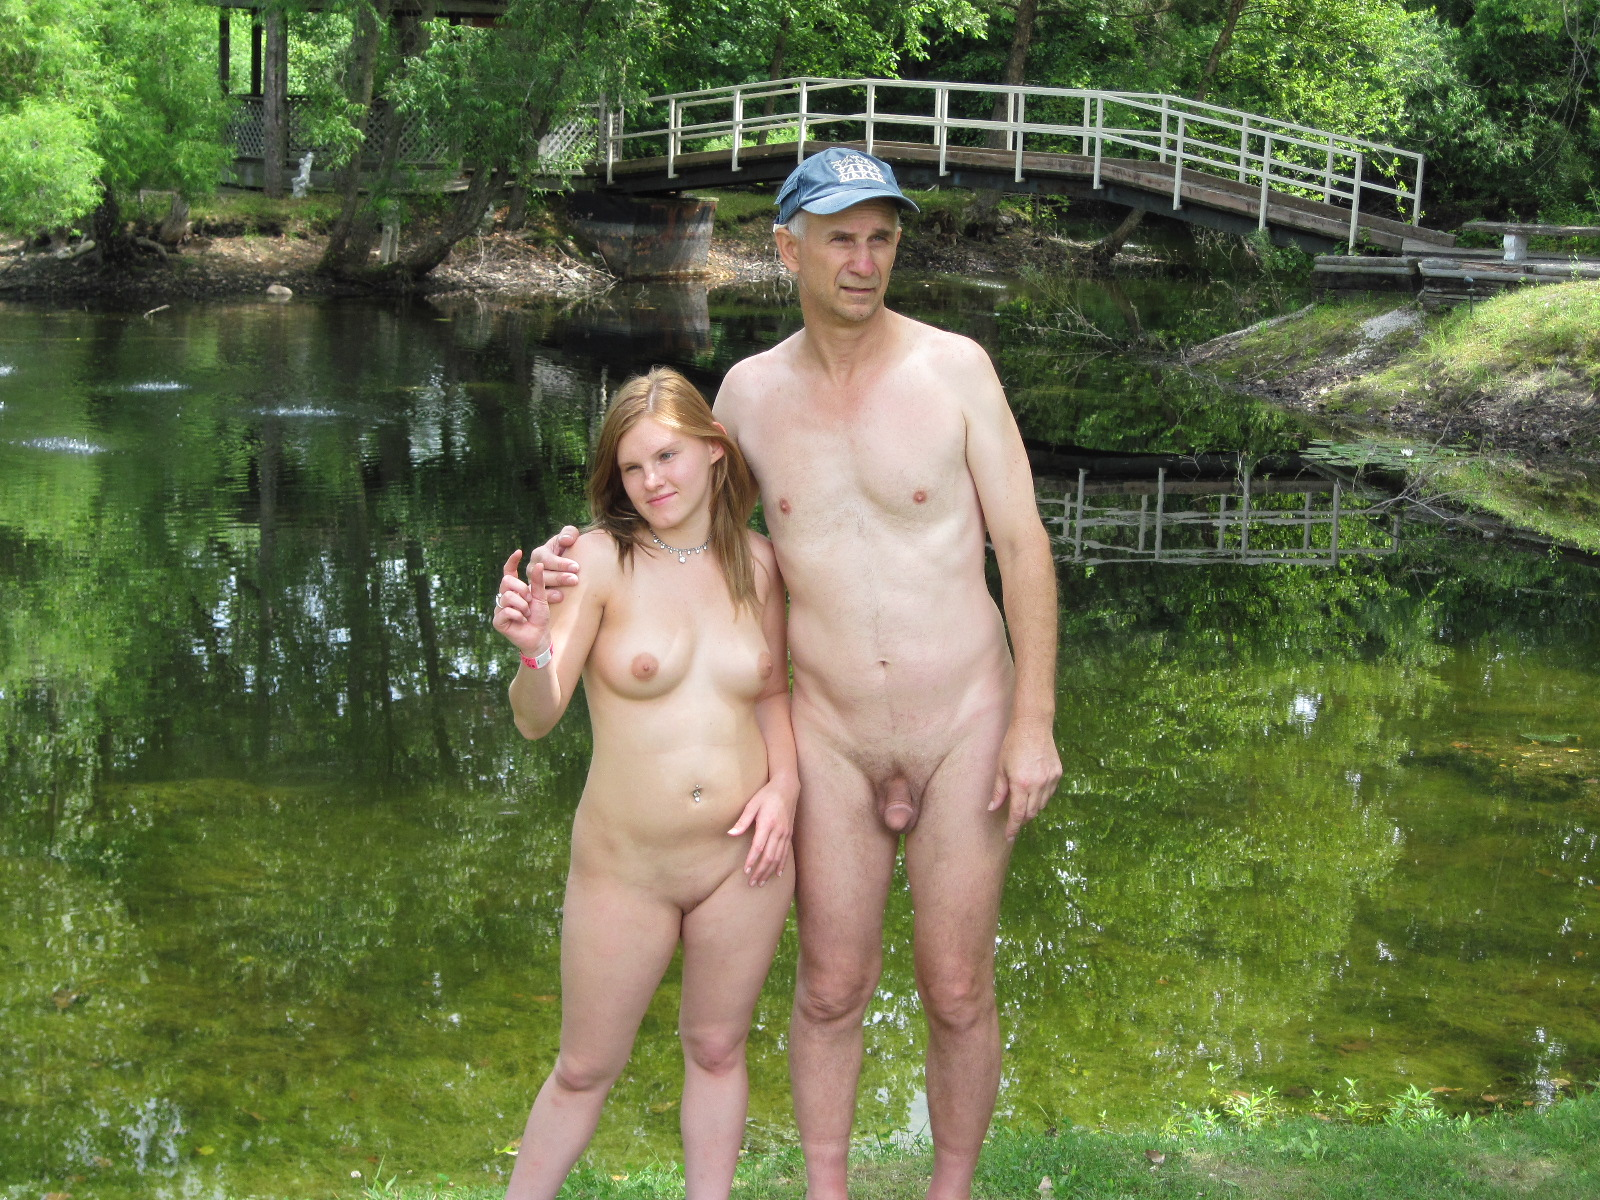 Don't fathern and daughter nude